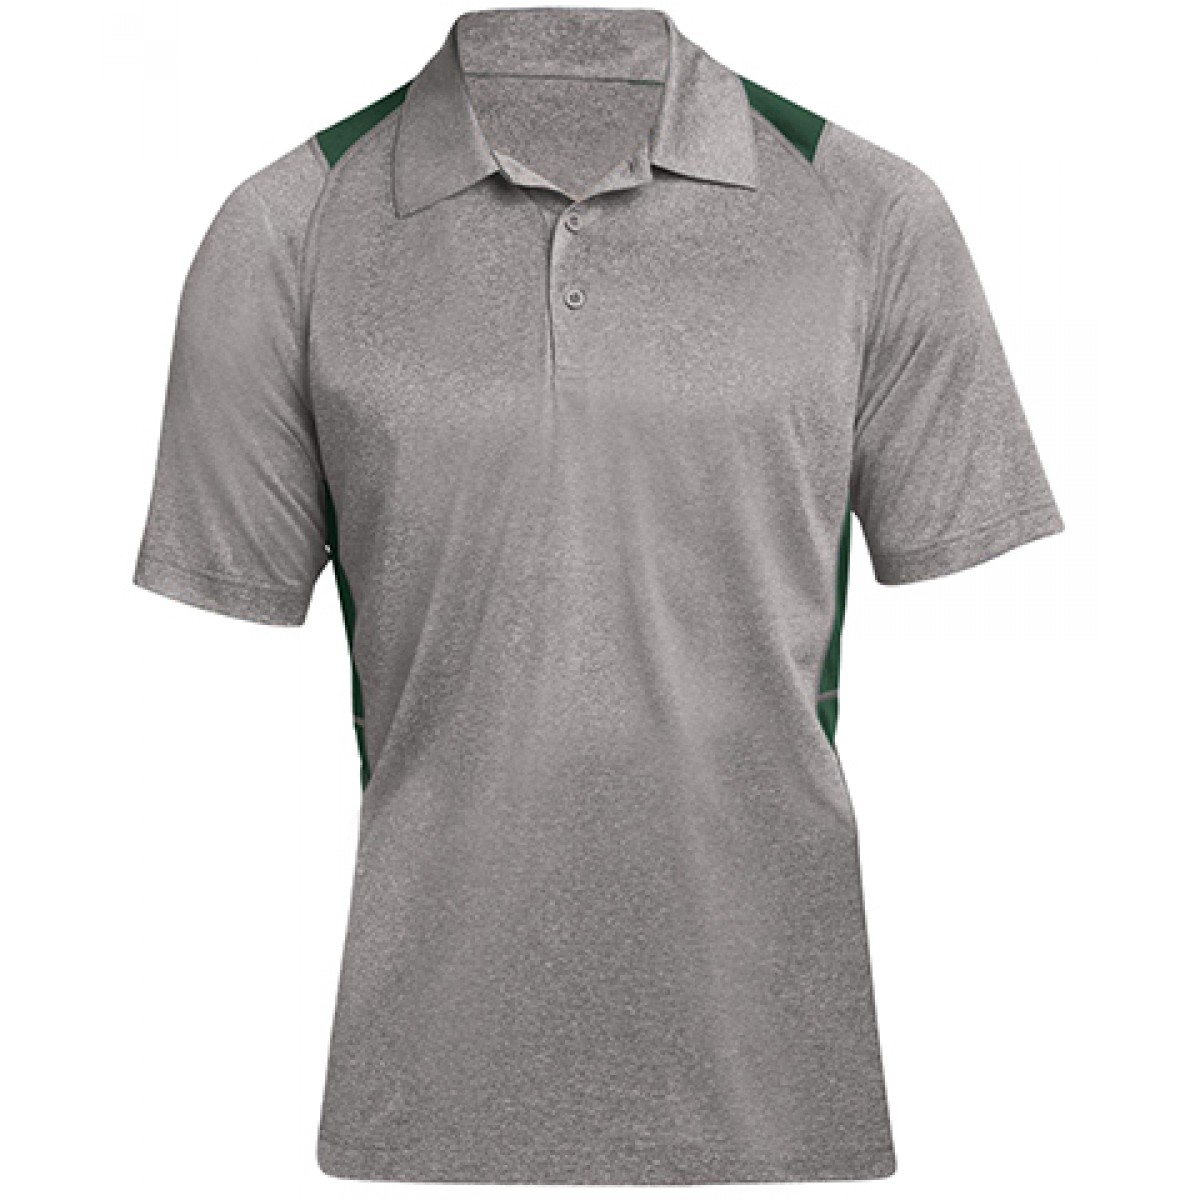 Heather Colorblock Contender Polo-Gray/Green-L